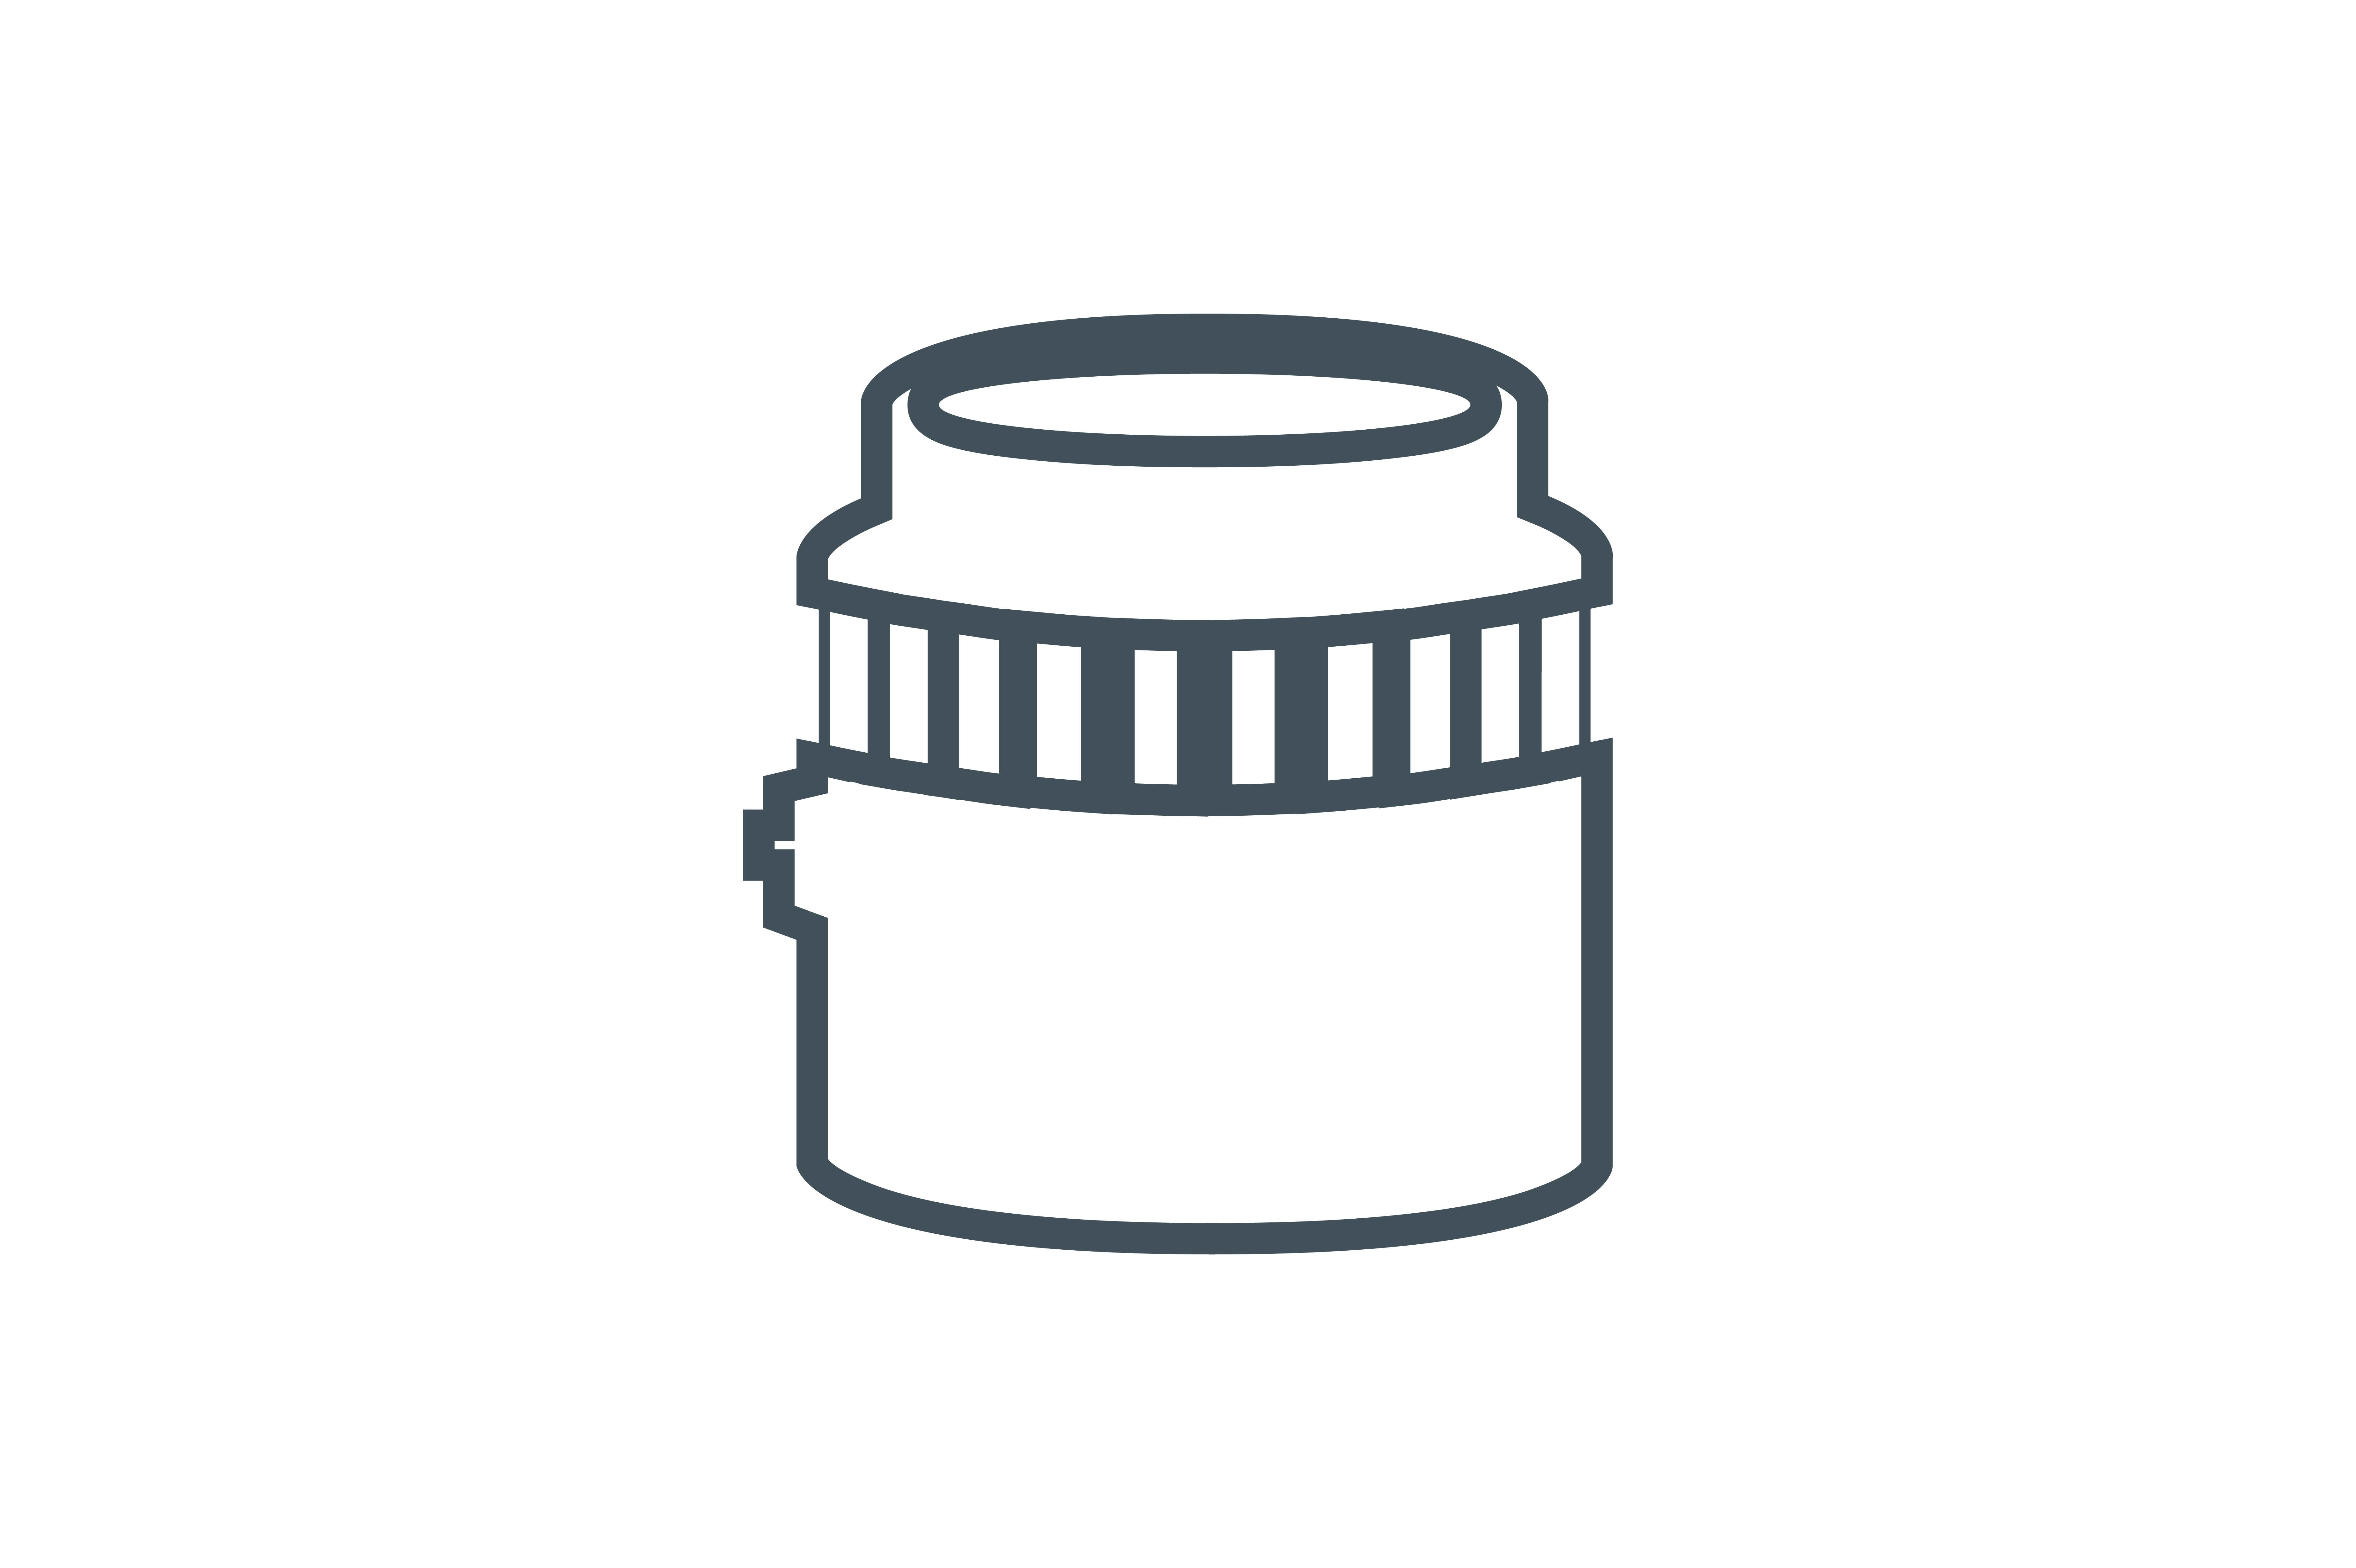 Download Free Lens Icon Graphic By Zafreeloicon Creative Fabrica for Cricut Explore, Silhouette and other cutting machines.